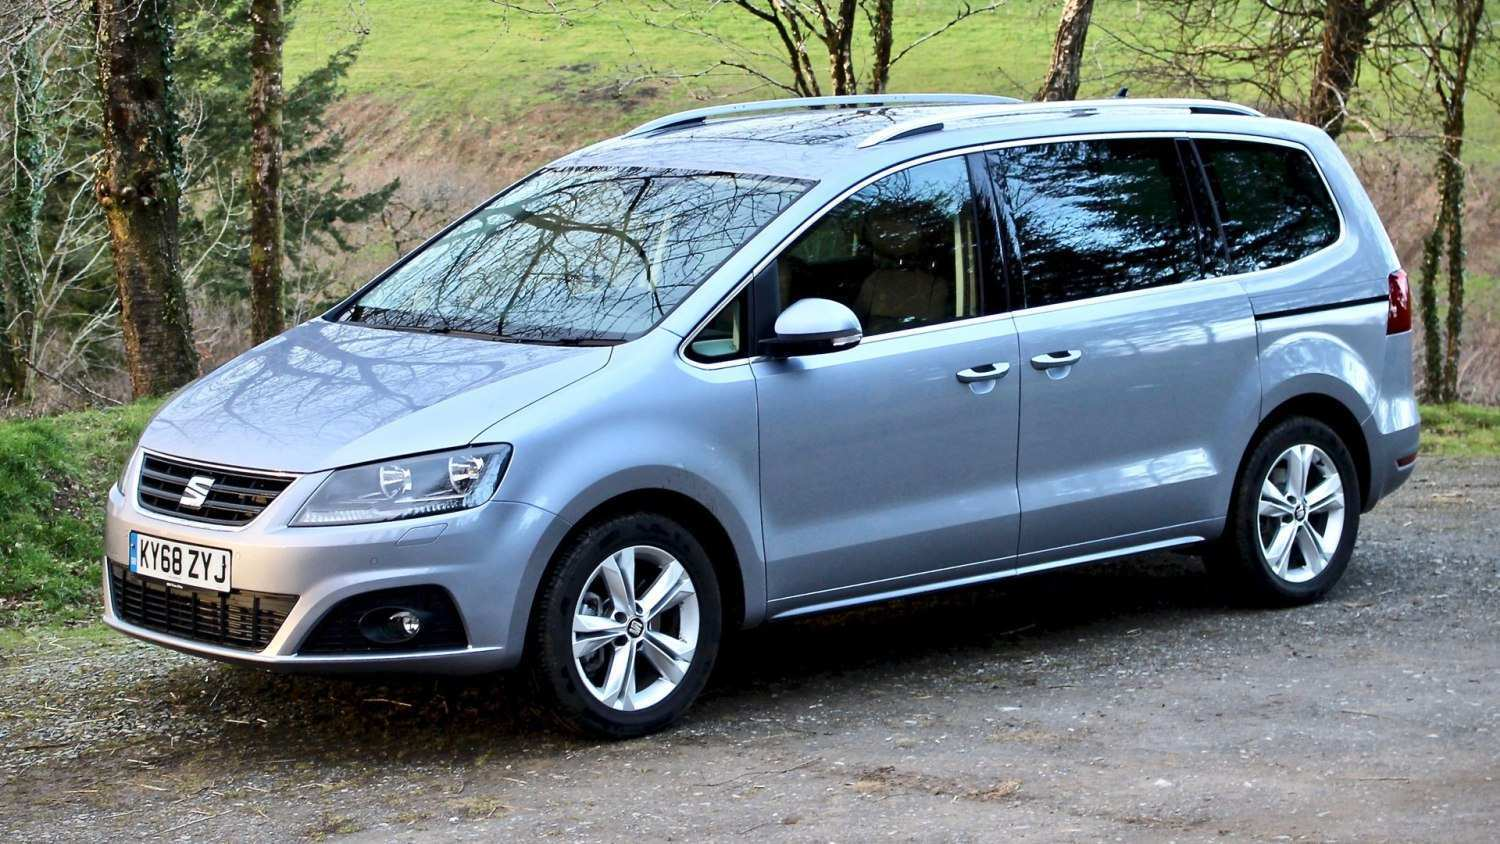 85 New 2019 Seat Alhambra Research New